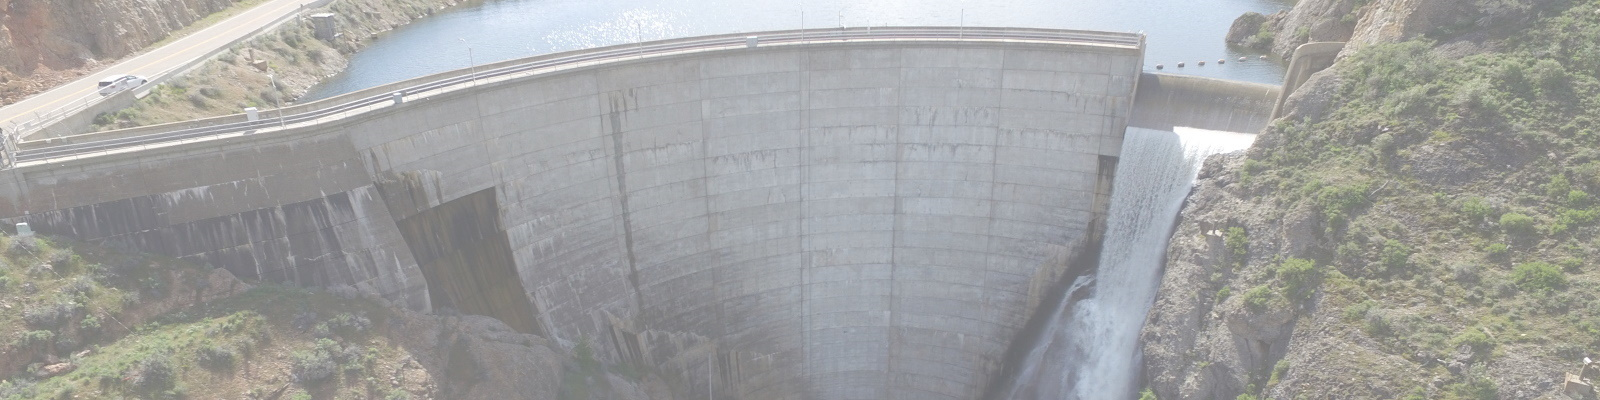 Image showing a concrete arch dam